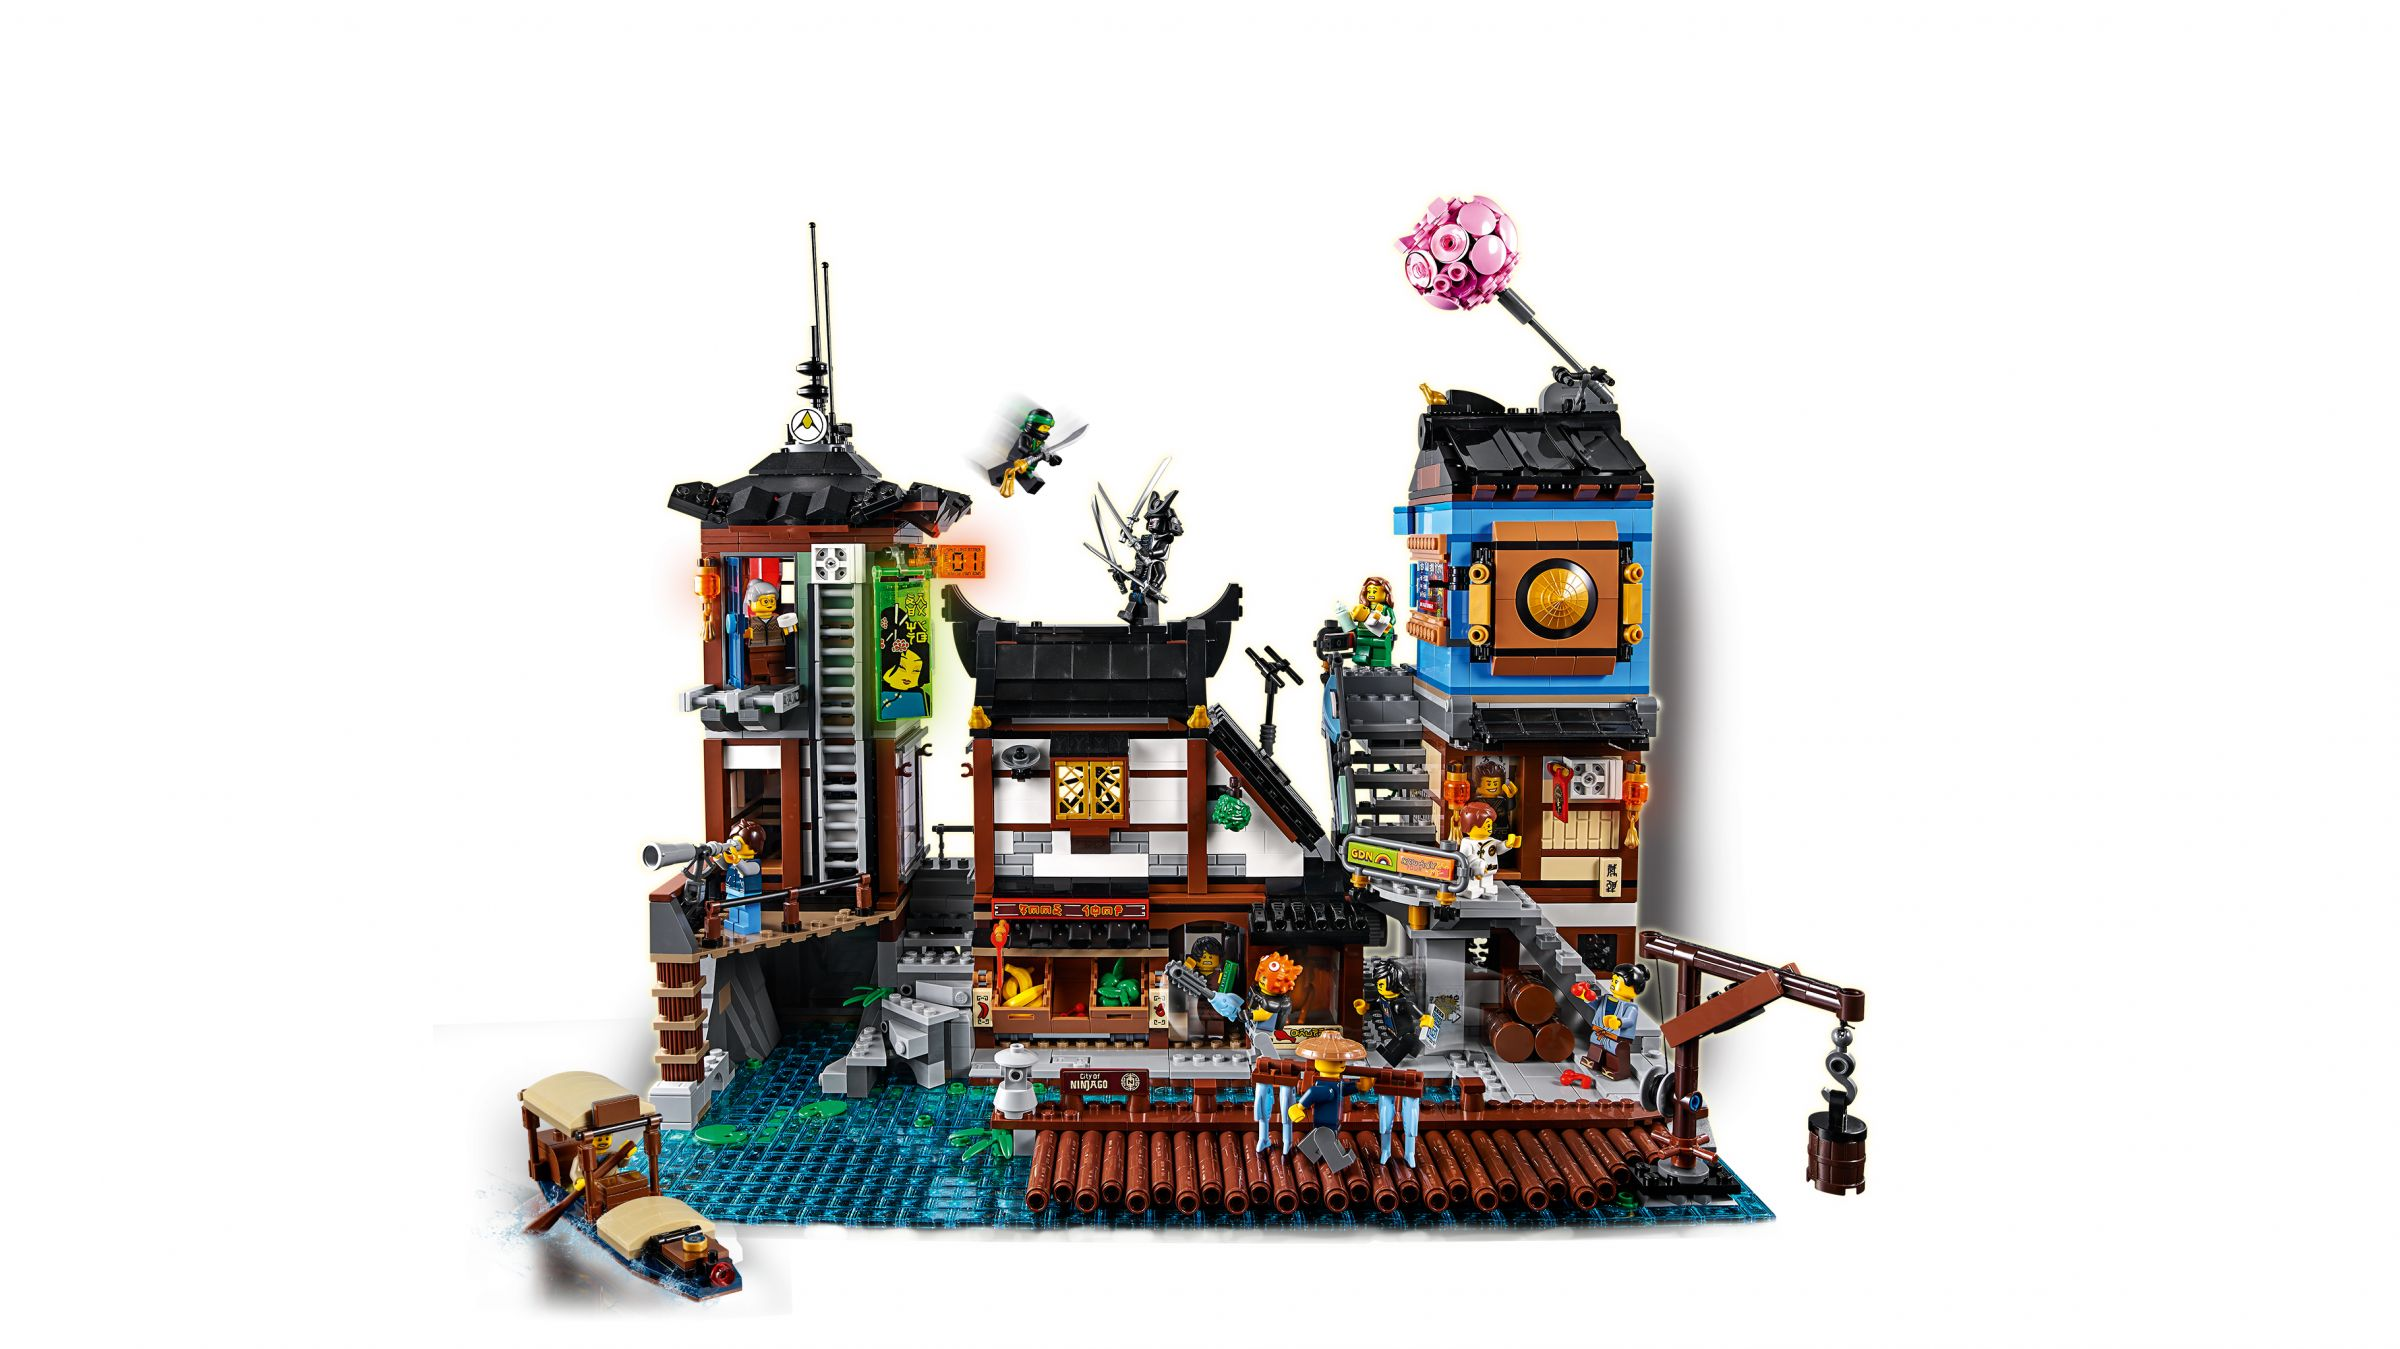 LEGO The LEGO Ninjago Movie 70657 Ninjago City Hafen LEGO_70657_Ninjago_City_Hafen_img04.jpg